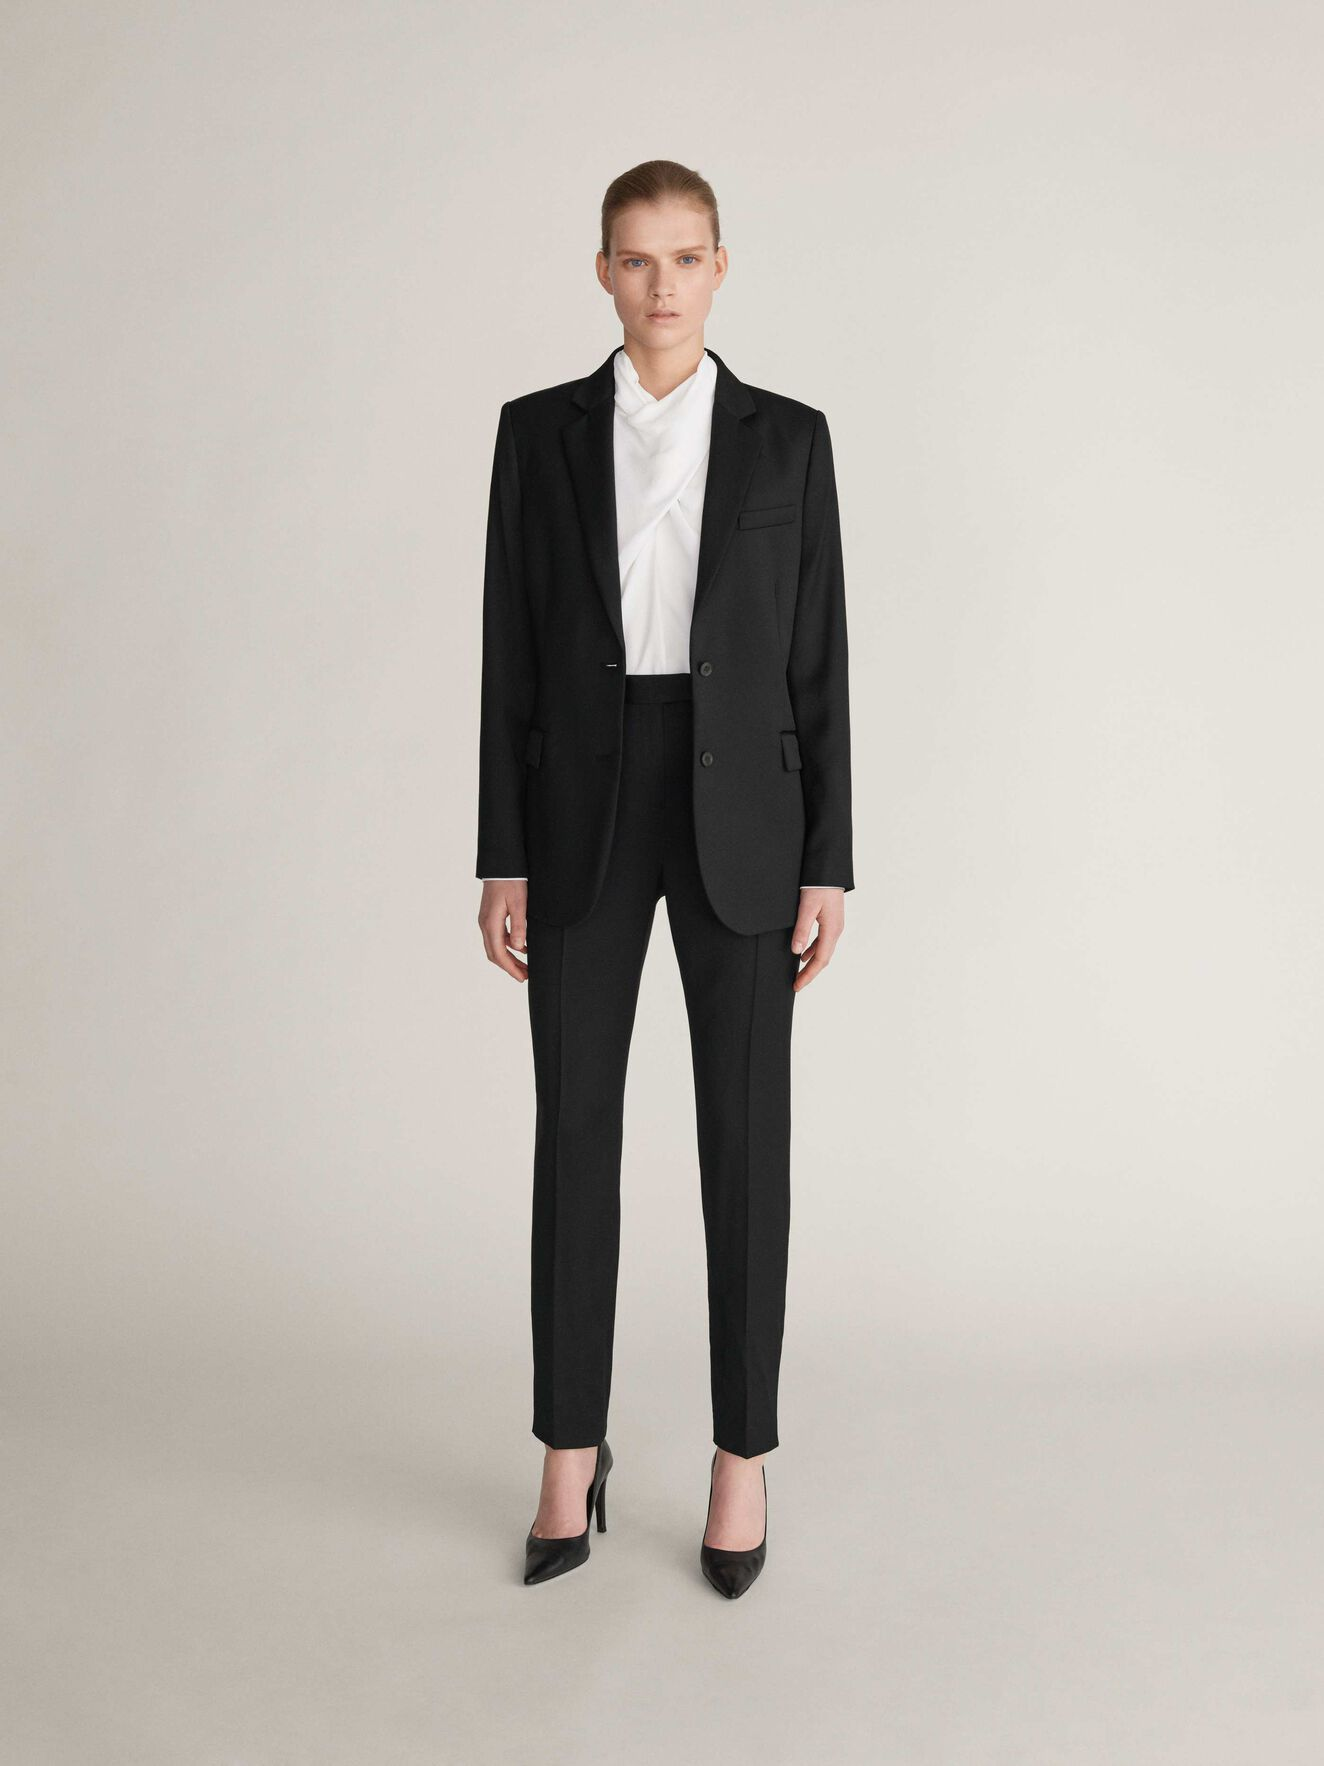 Monoik Blazer in Midnight Black from Tiger of Sweden